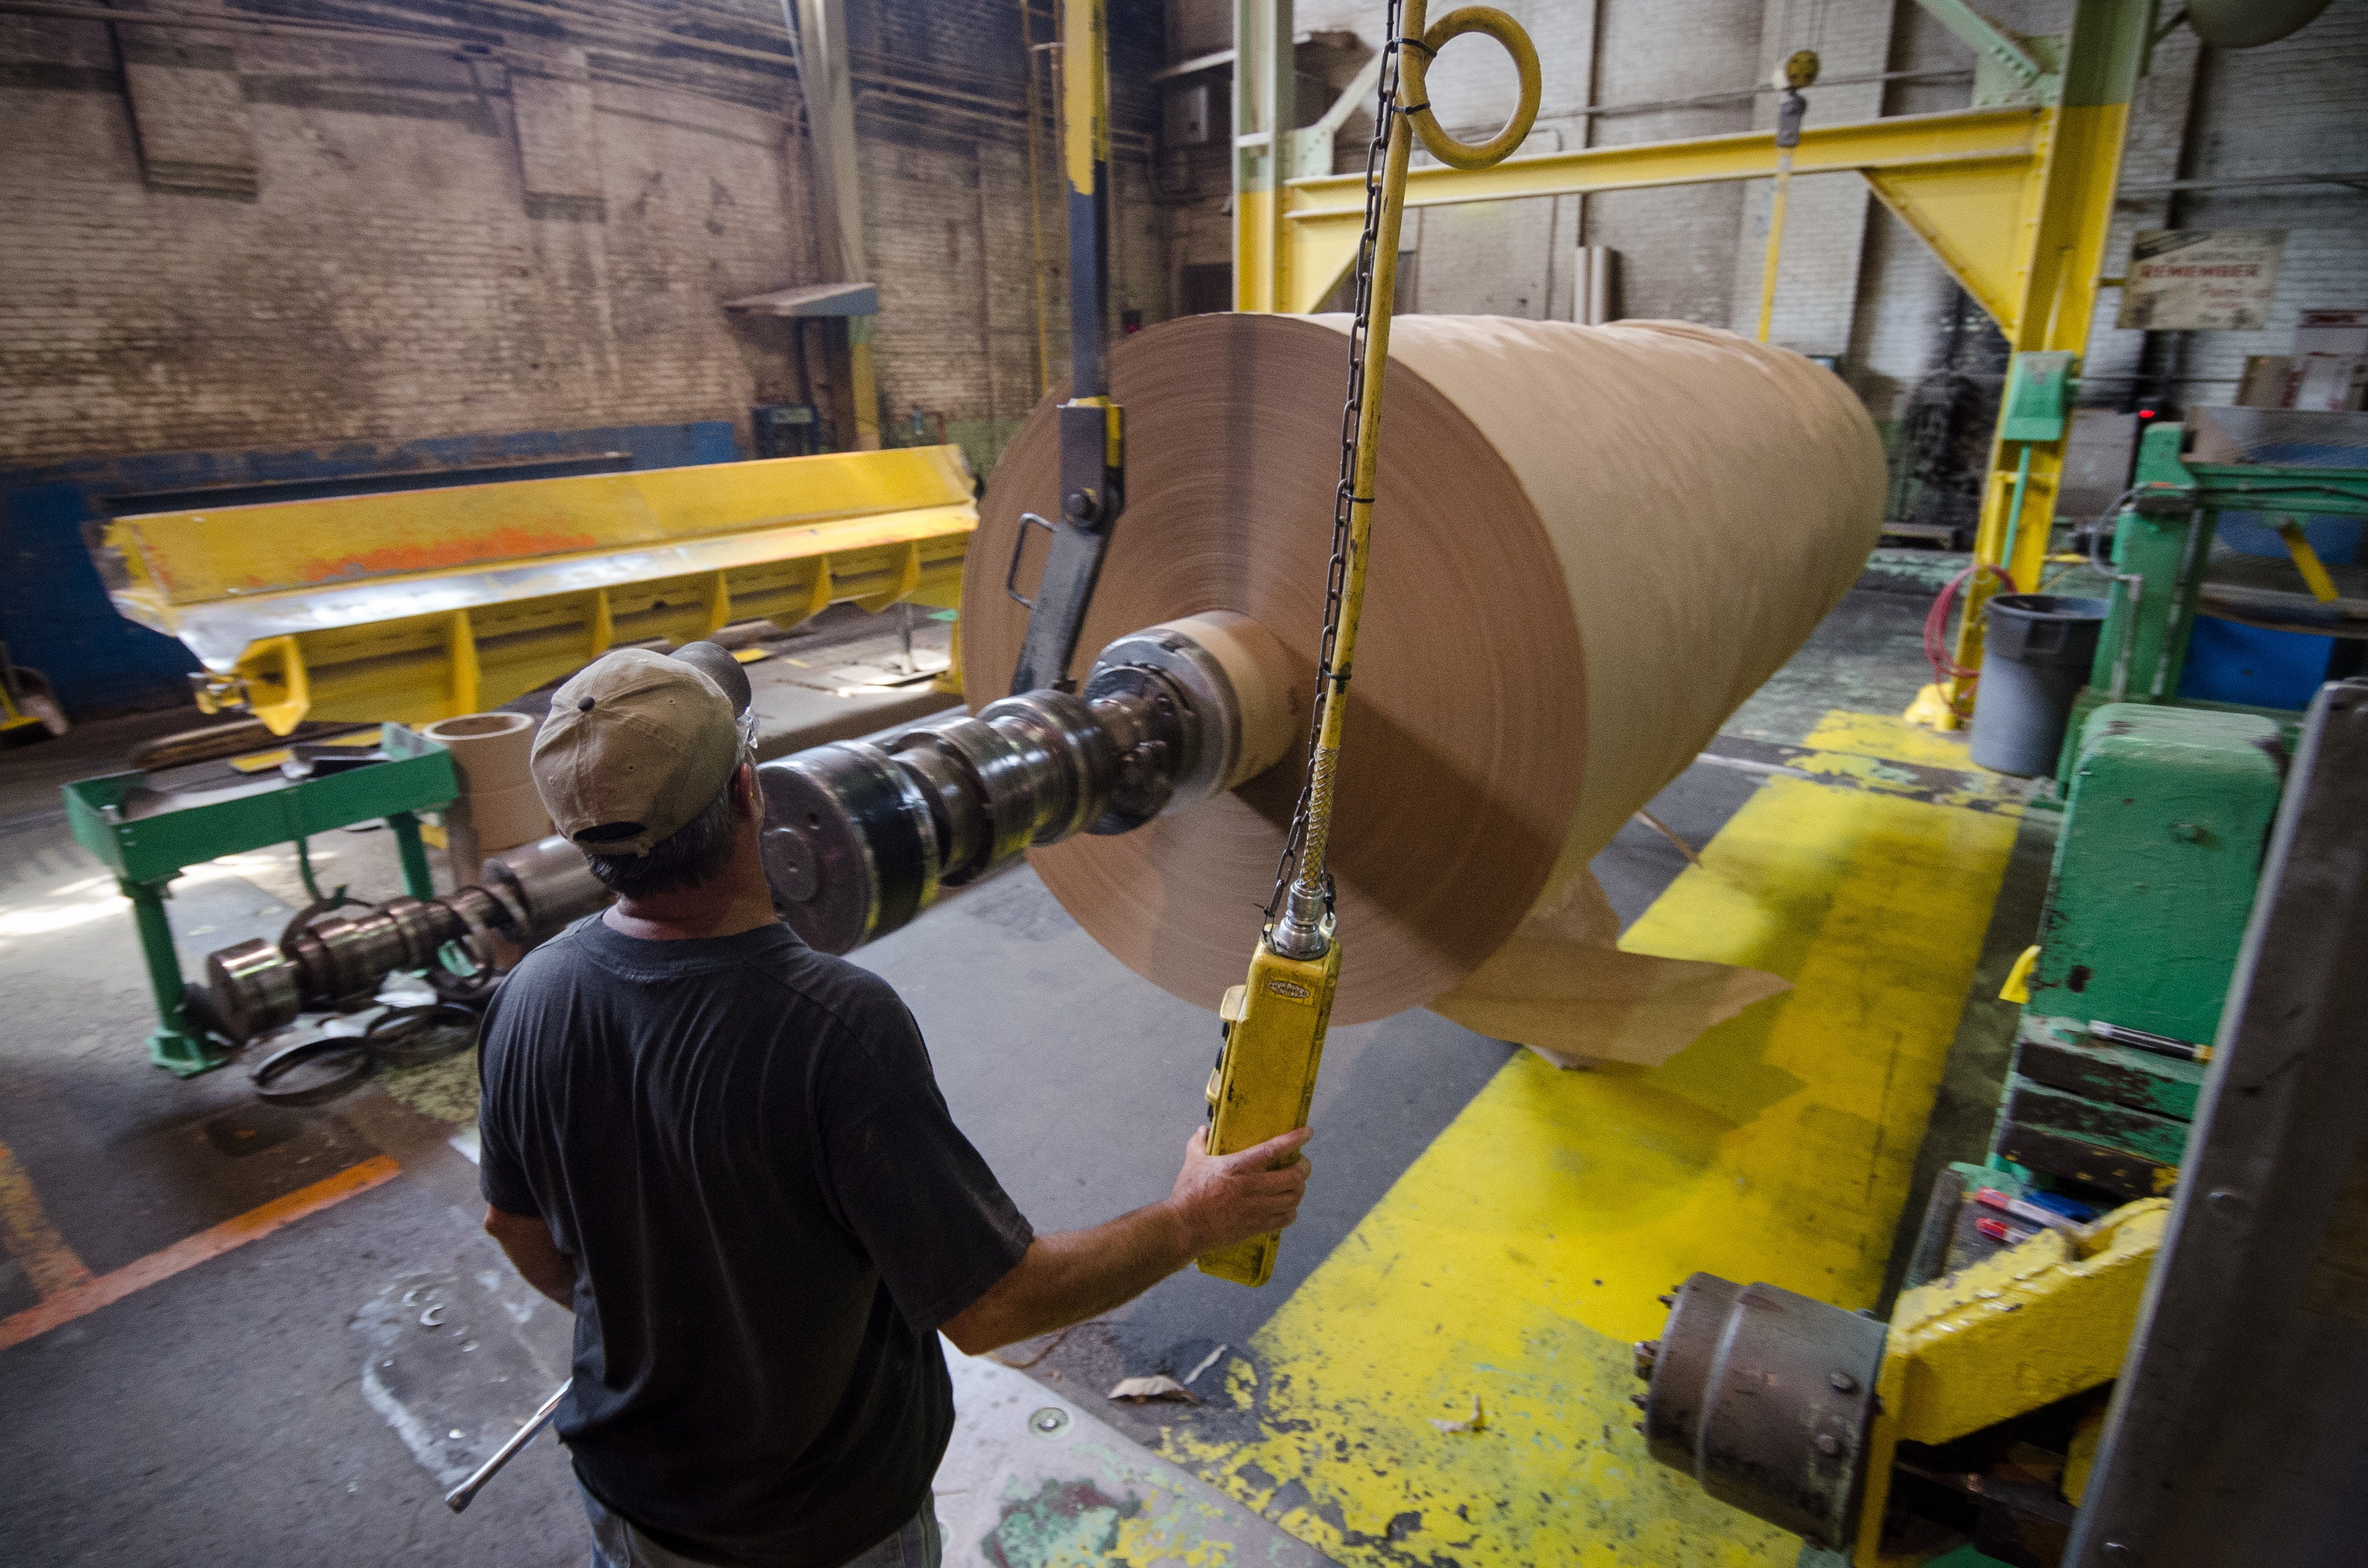 What role research and development play in the papermaking industry